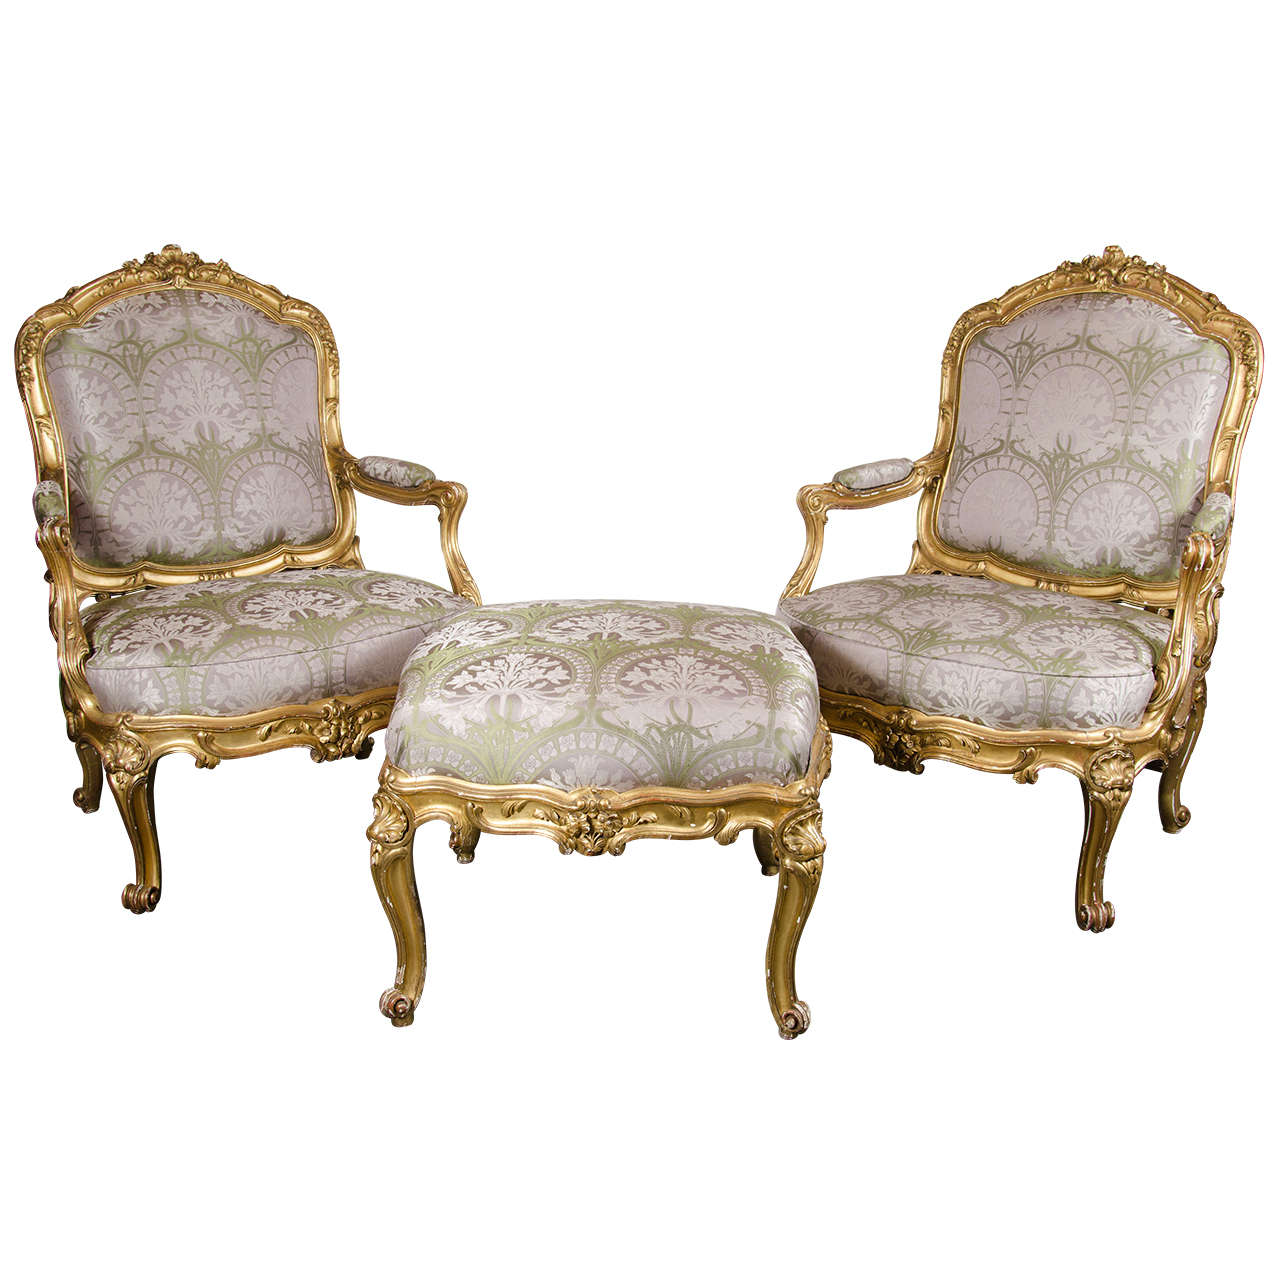 Bergere chair and ottoman - Pair Of French Bergere Chairs And Ottoman In Gilded Wood And Satin Upholstery 1